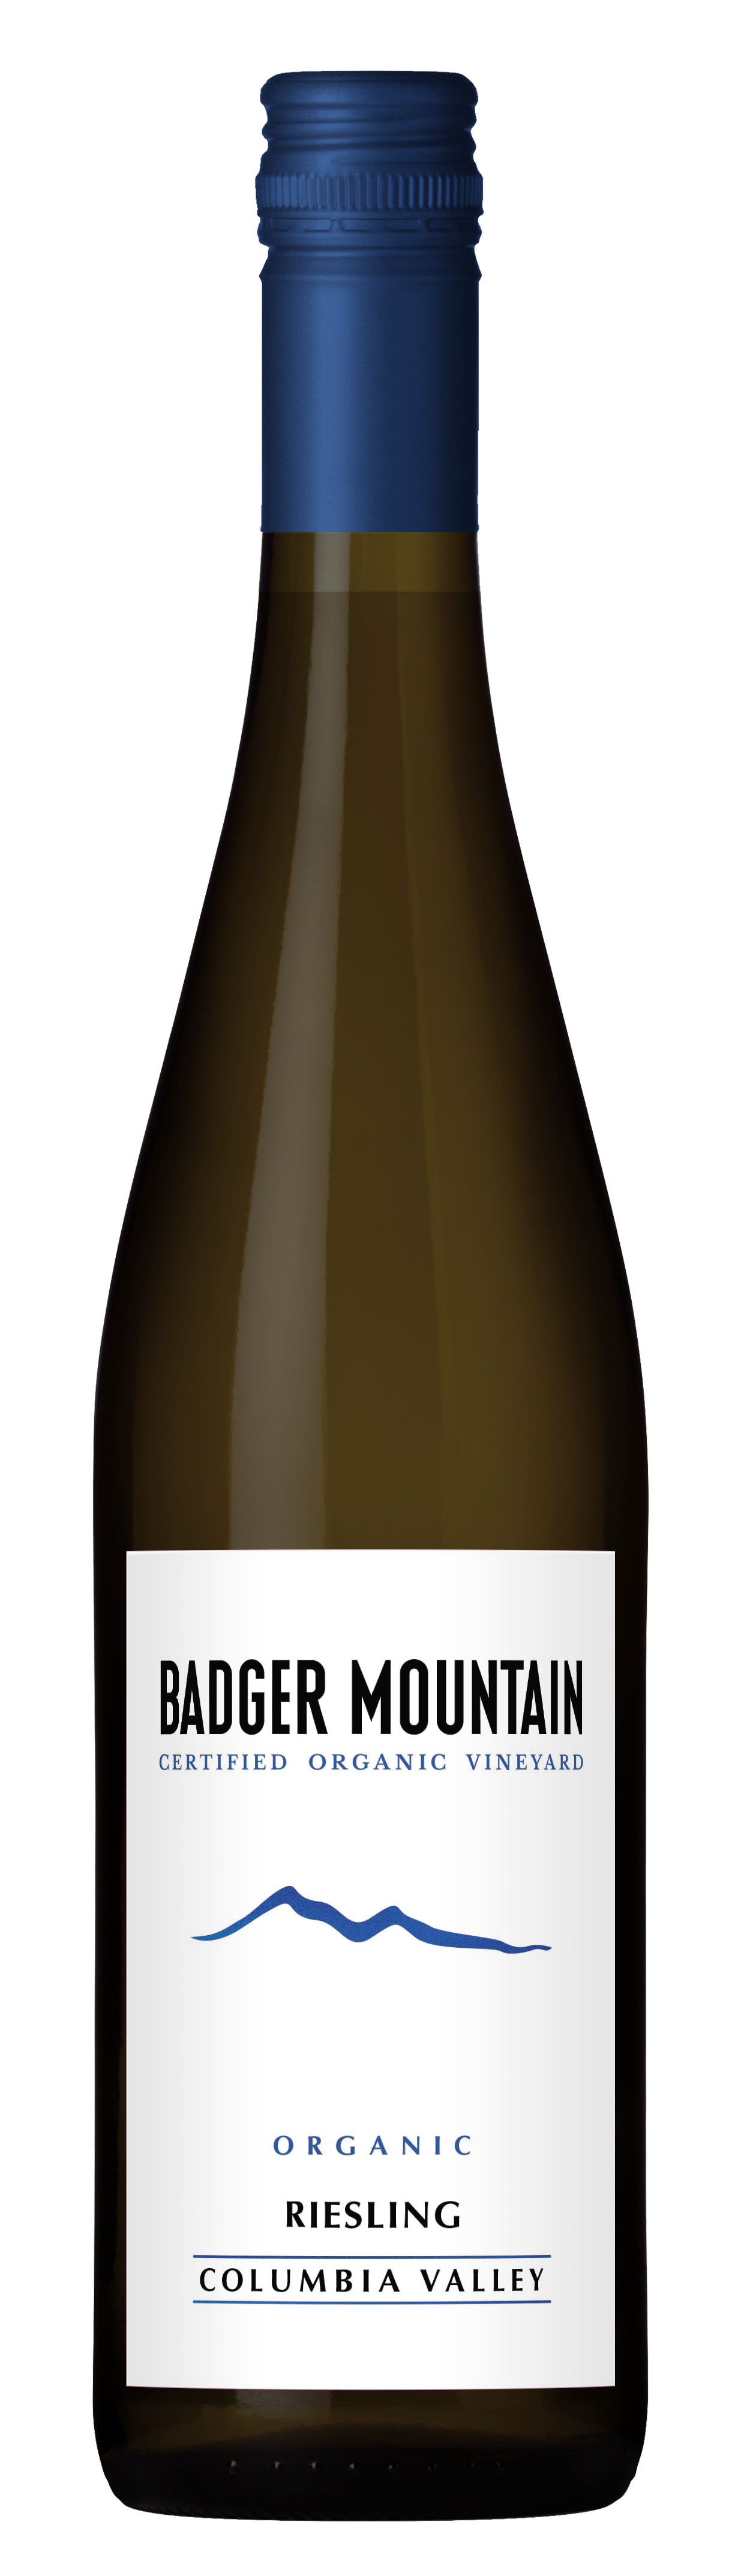 2017 Badger Mountain Riesling, USDA Organic, No Sulfites Added